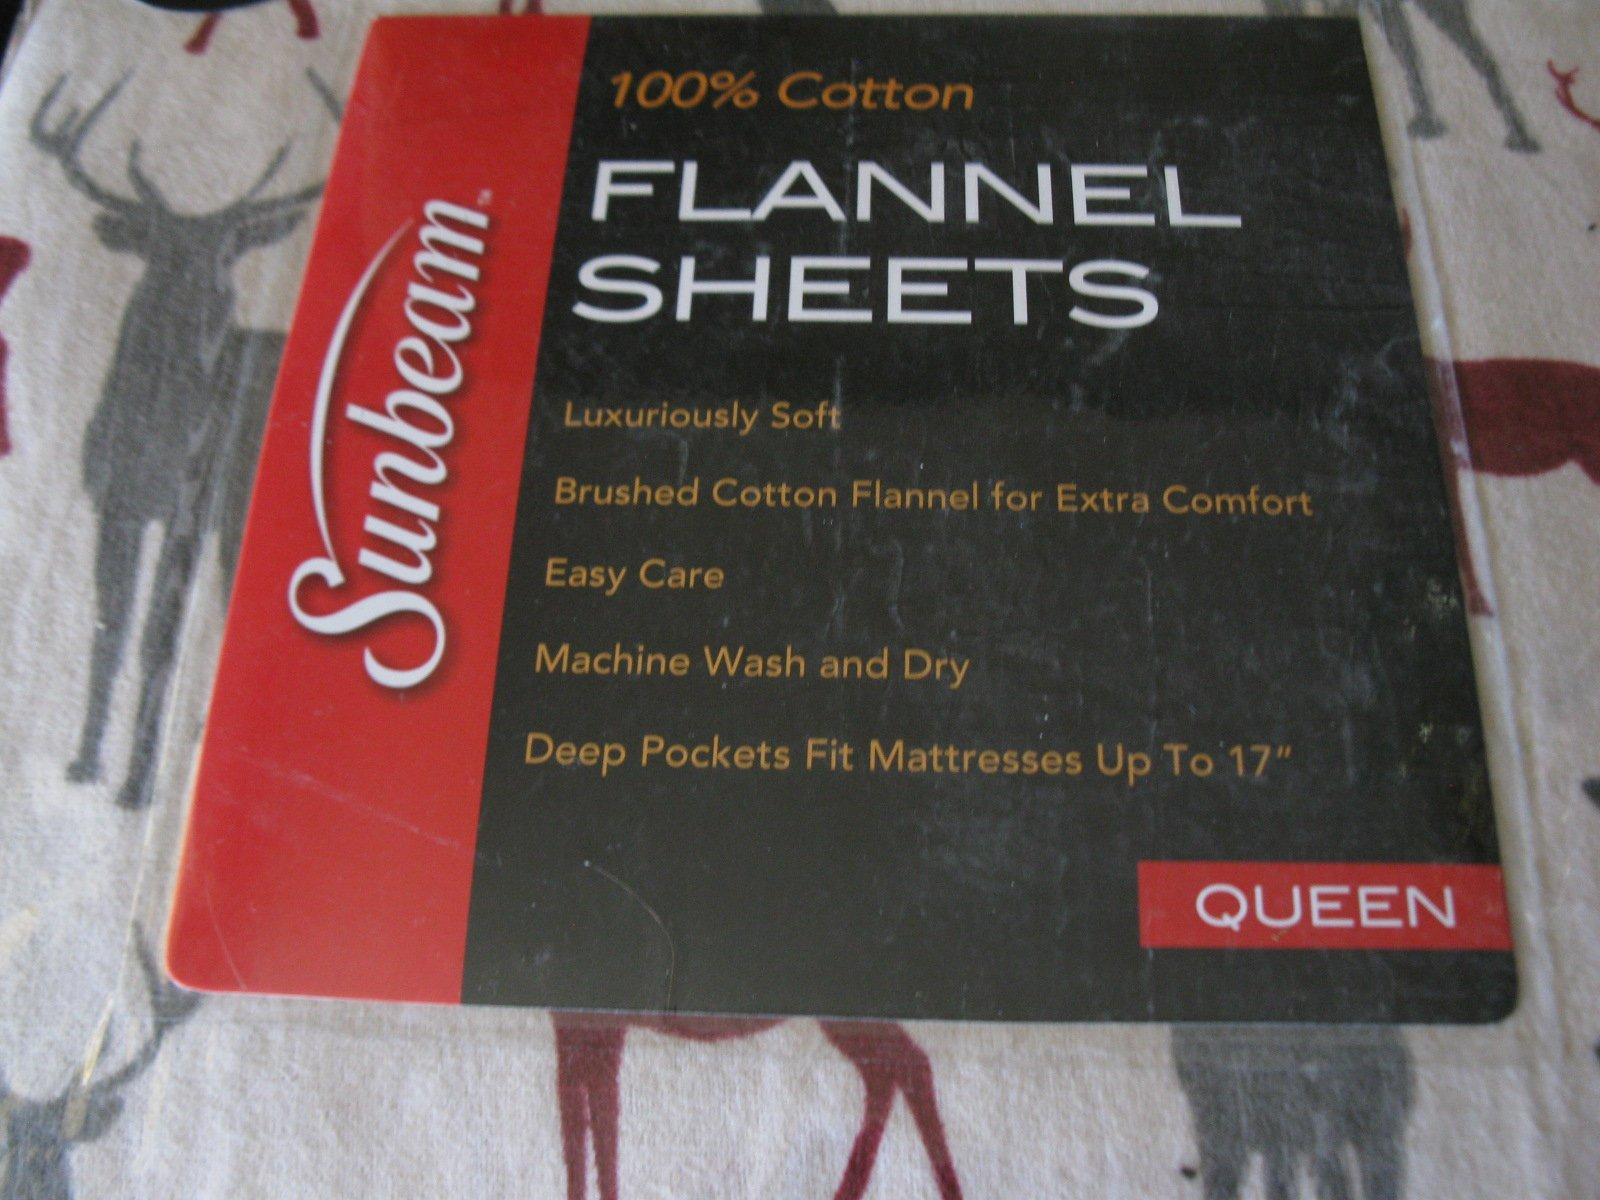 Sunbeam Wood Grain Deer 100% Cotton Queen Flannel Sheets - Includes 1 Flat Sheet, 1 Fitted Sheet and 4 Standard Pillowcases by Sunbeam (Image #2)